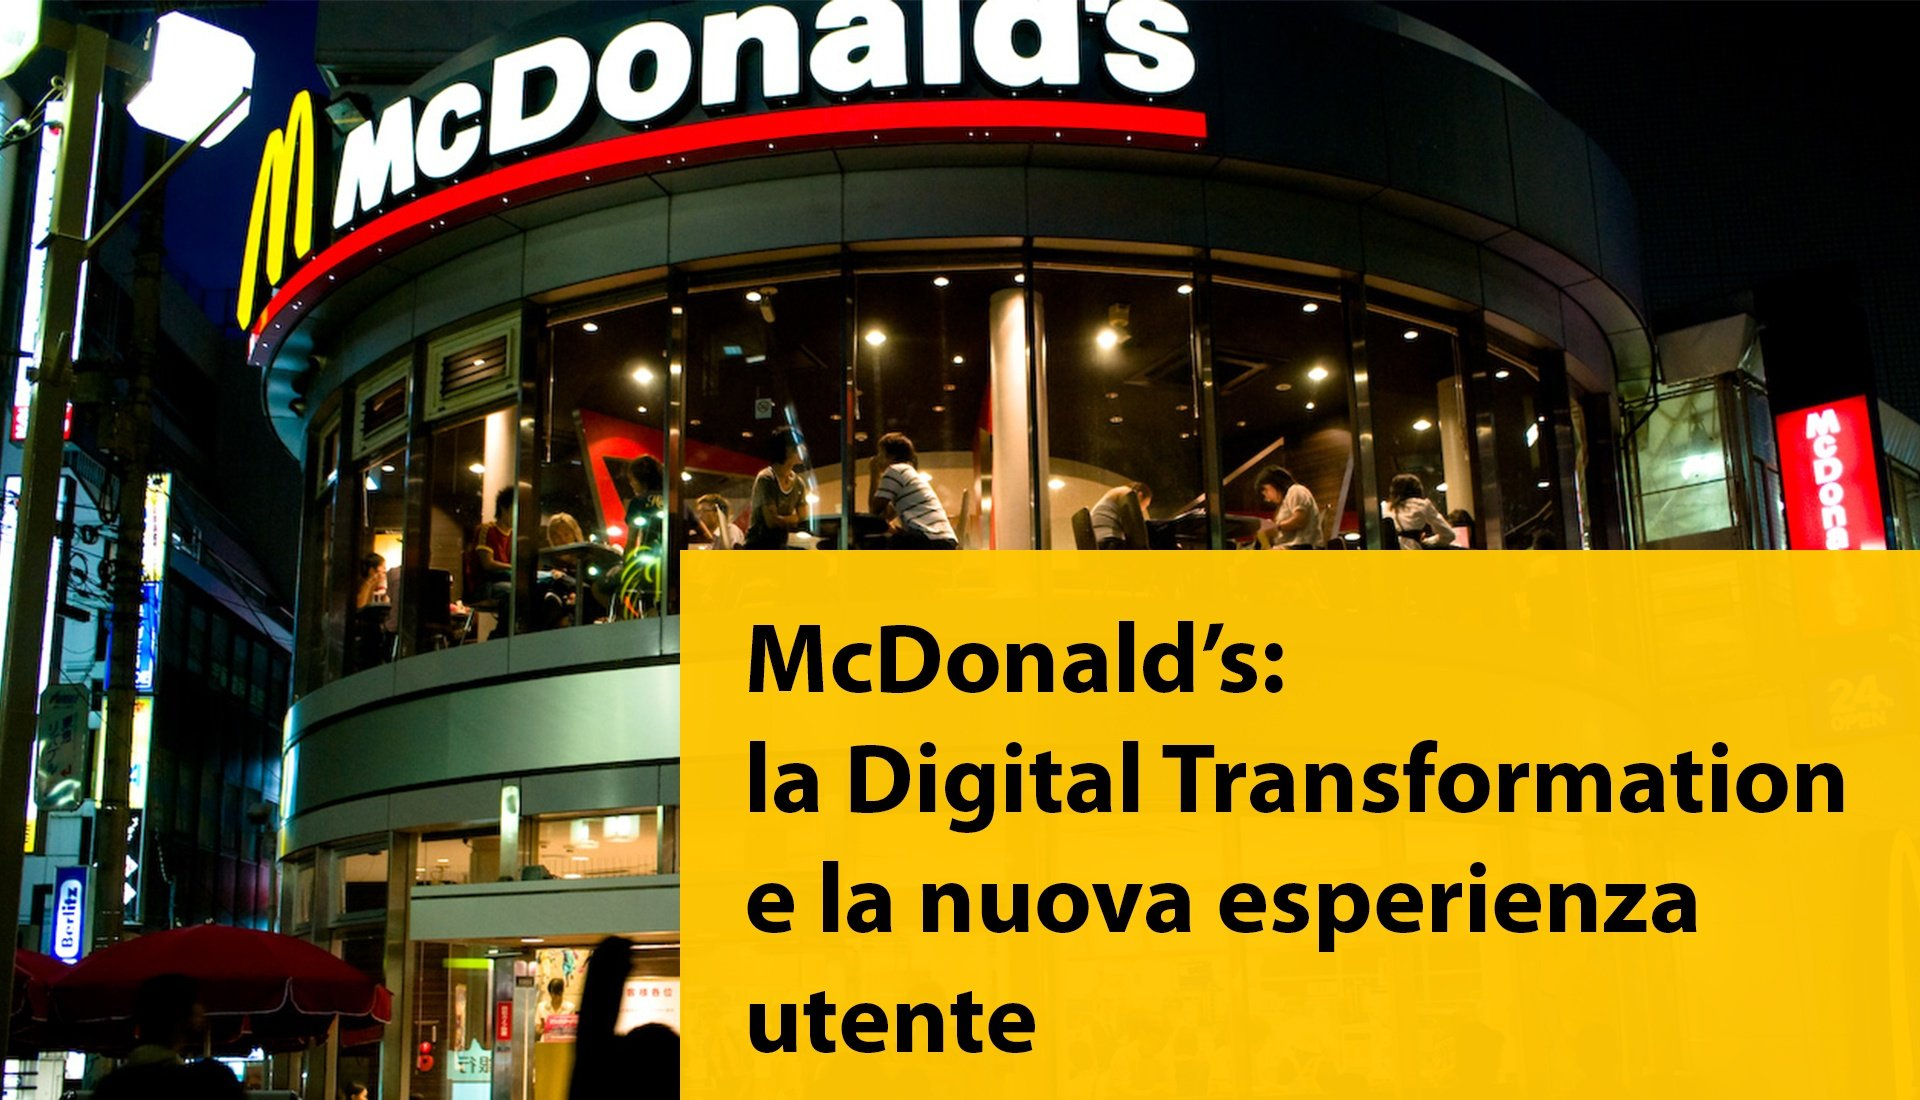 mcdonalds-digital-transformation-e-esperienza-utente-1.jpg